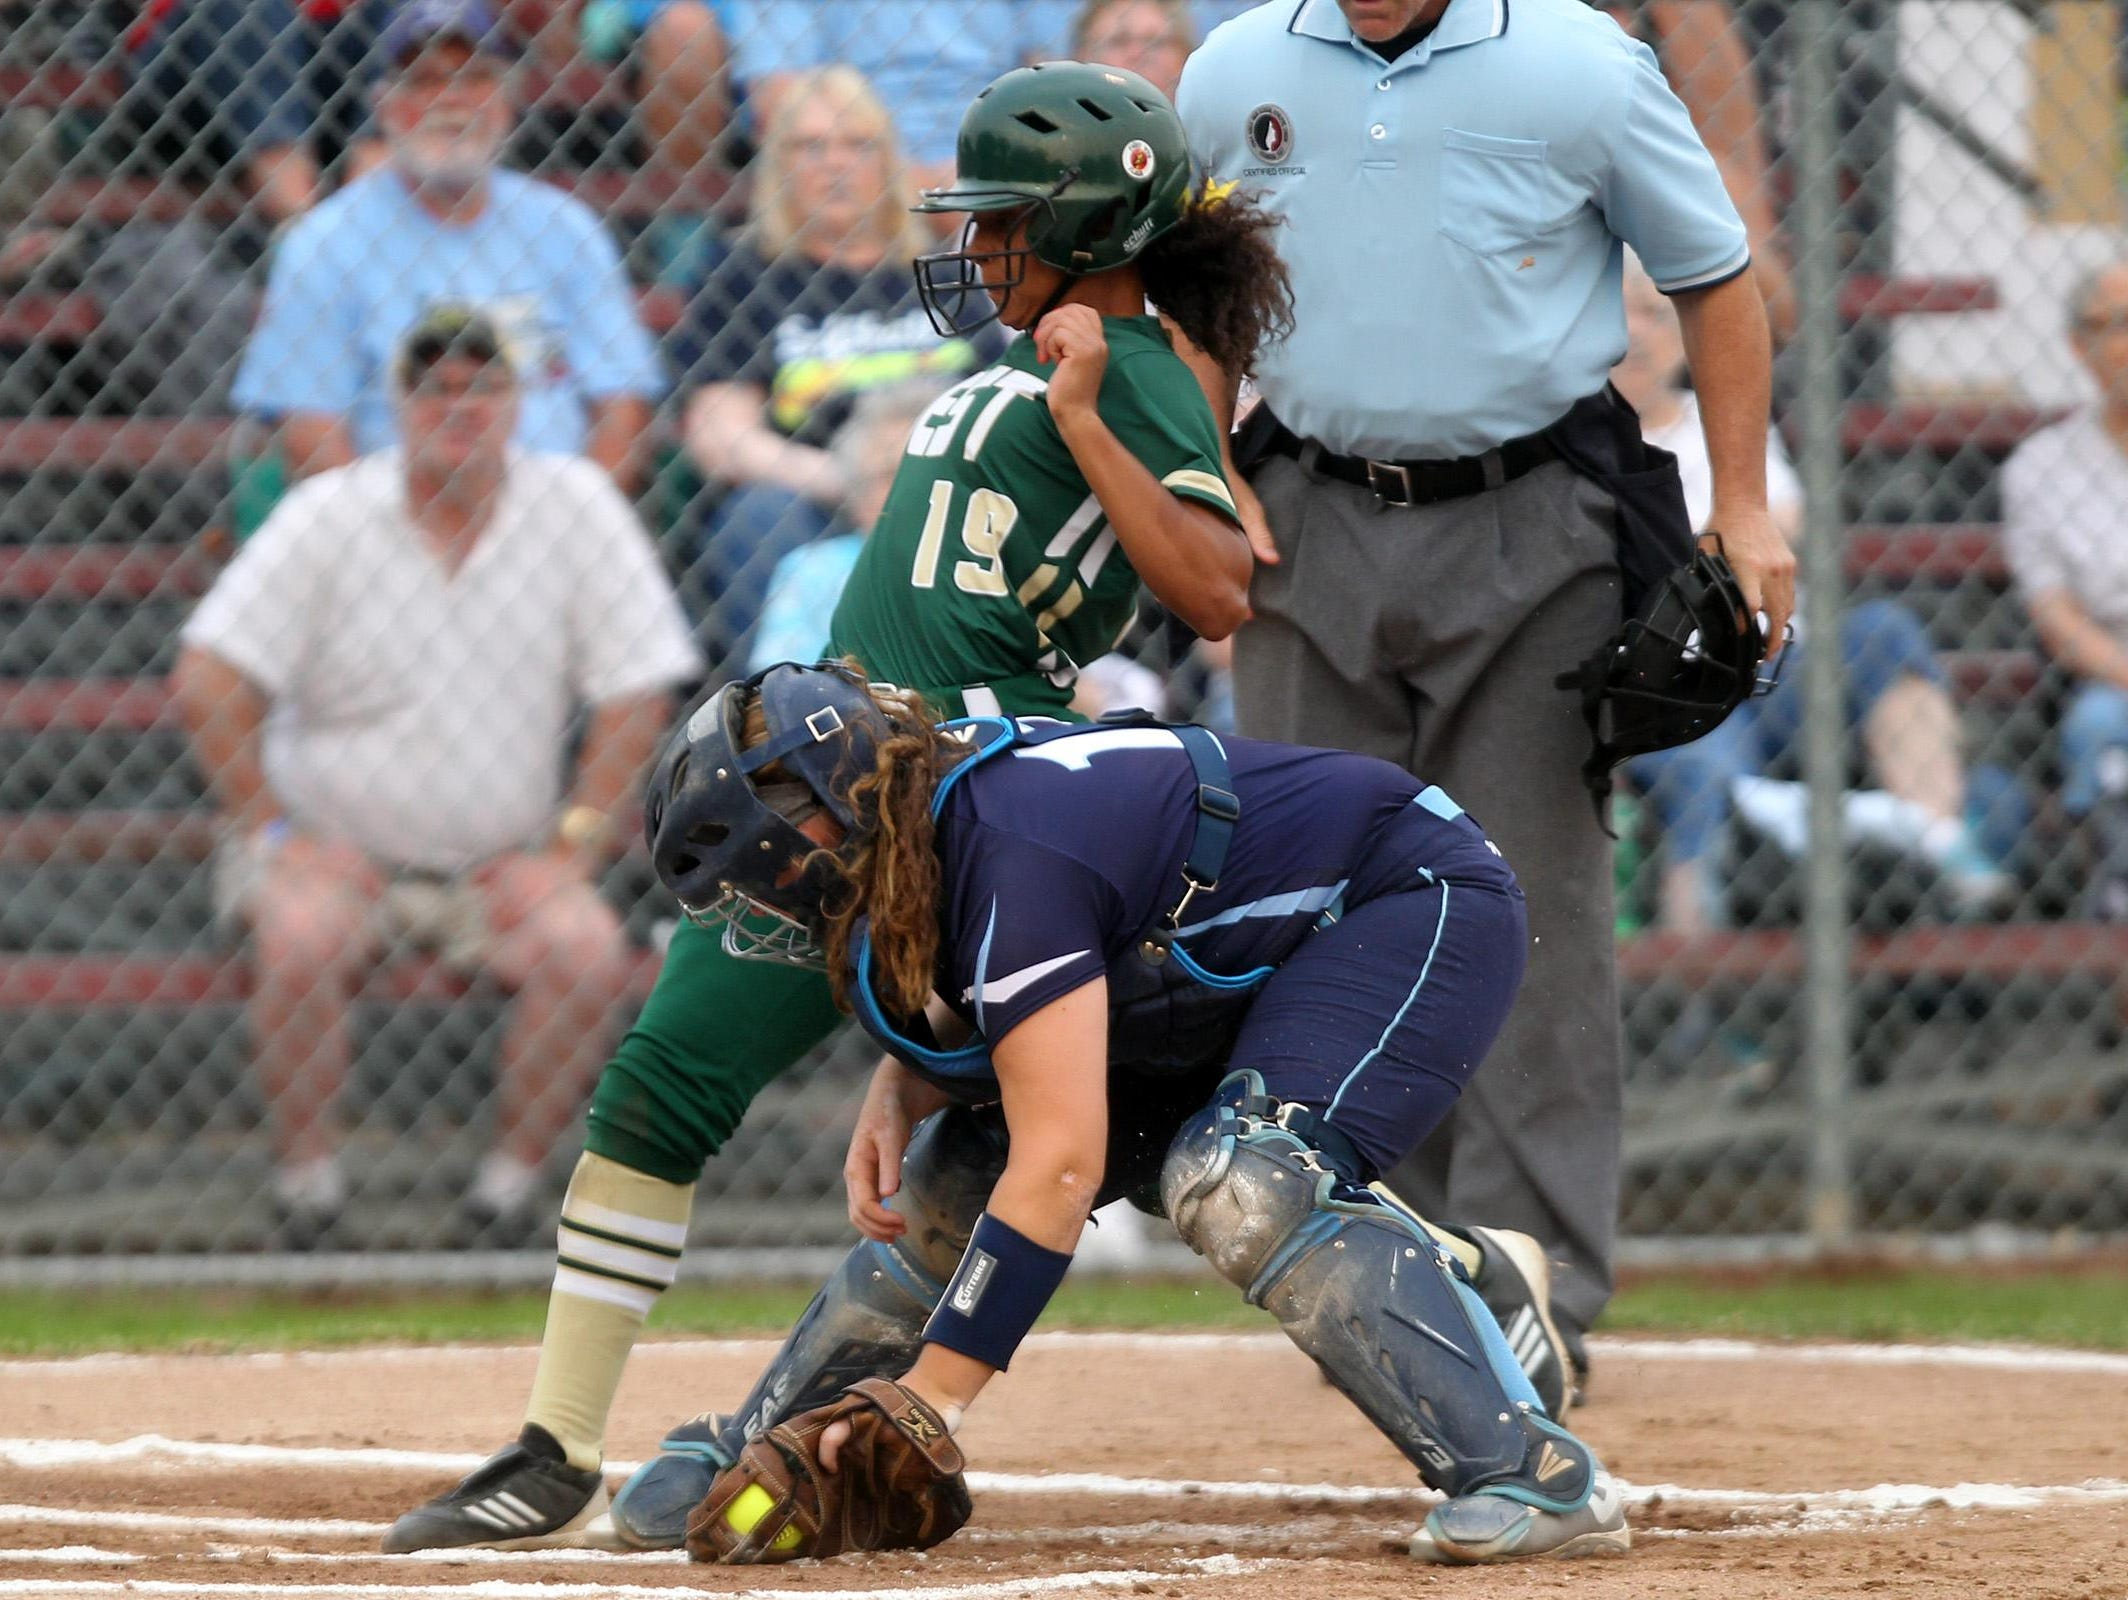 West High's Taleah Smith gets tagged out at home plate during the Women of Troy's second game against Cedar Rapids Jefferson in Cedar Rapids on Tuesday, June 30, 2015.